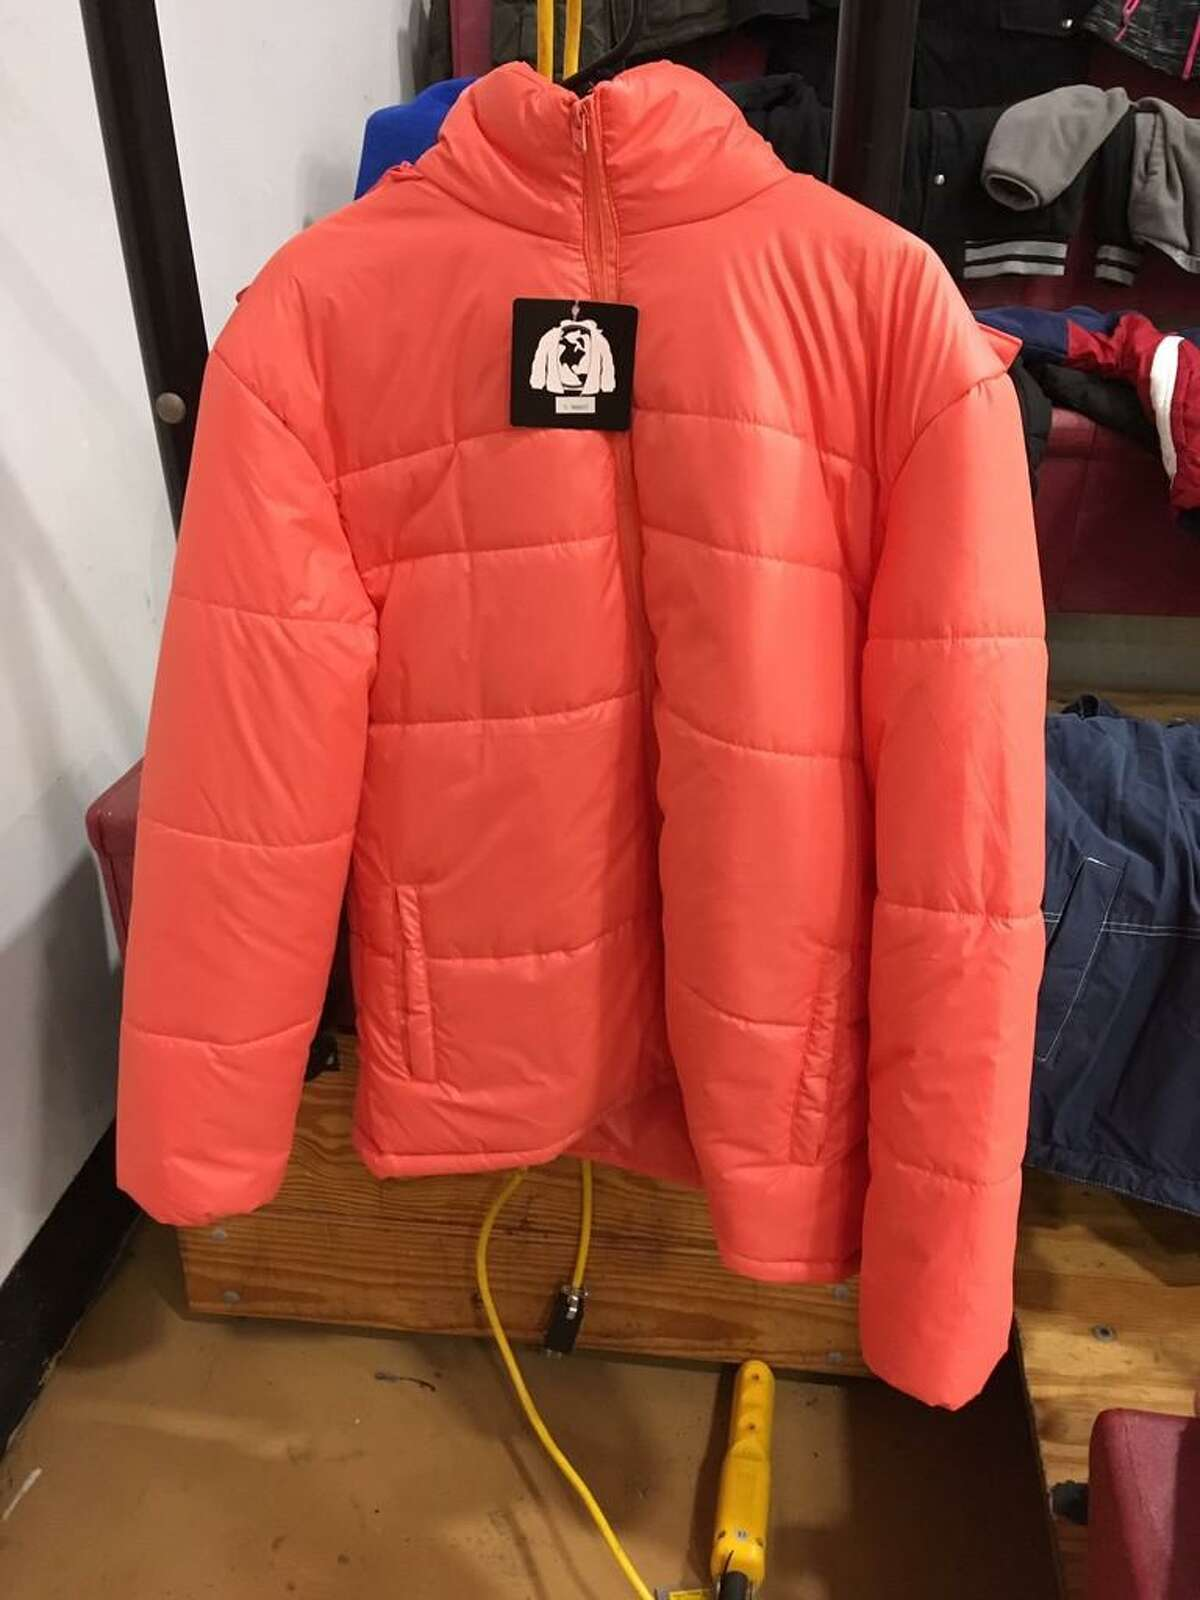 One of the many coats to be given away on Saturday